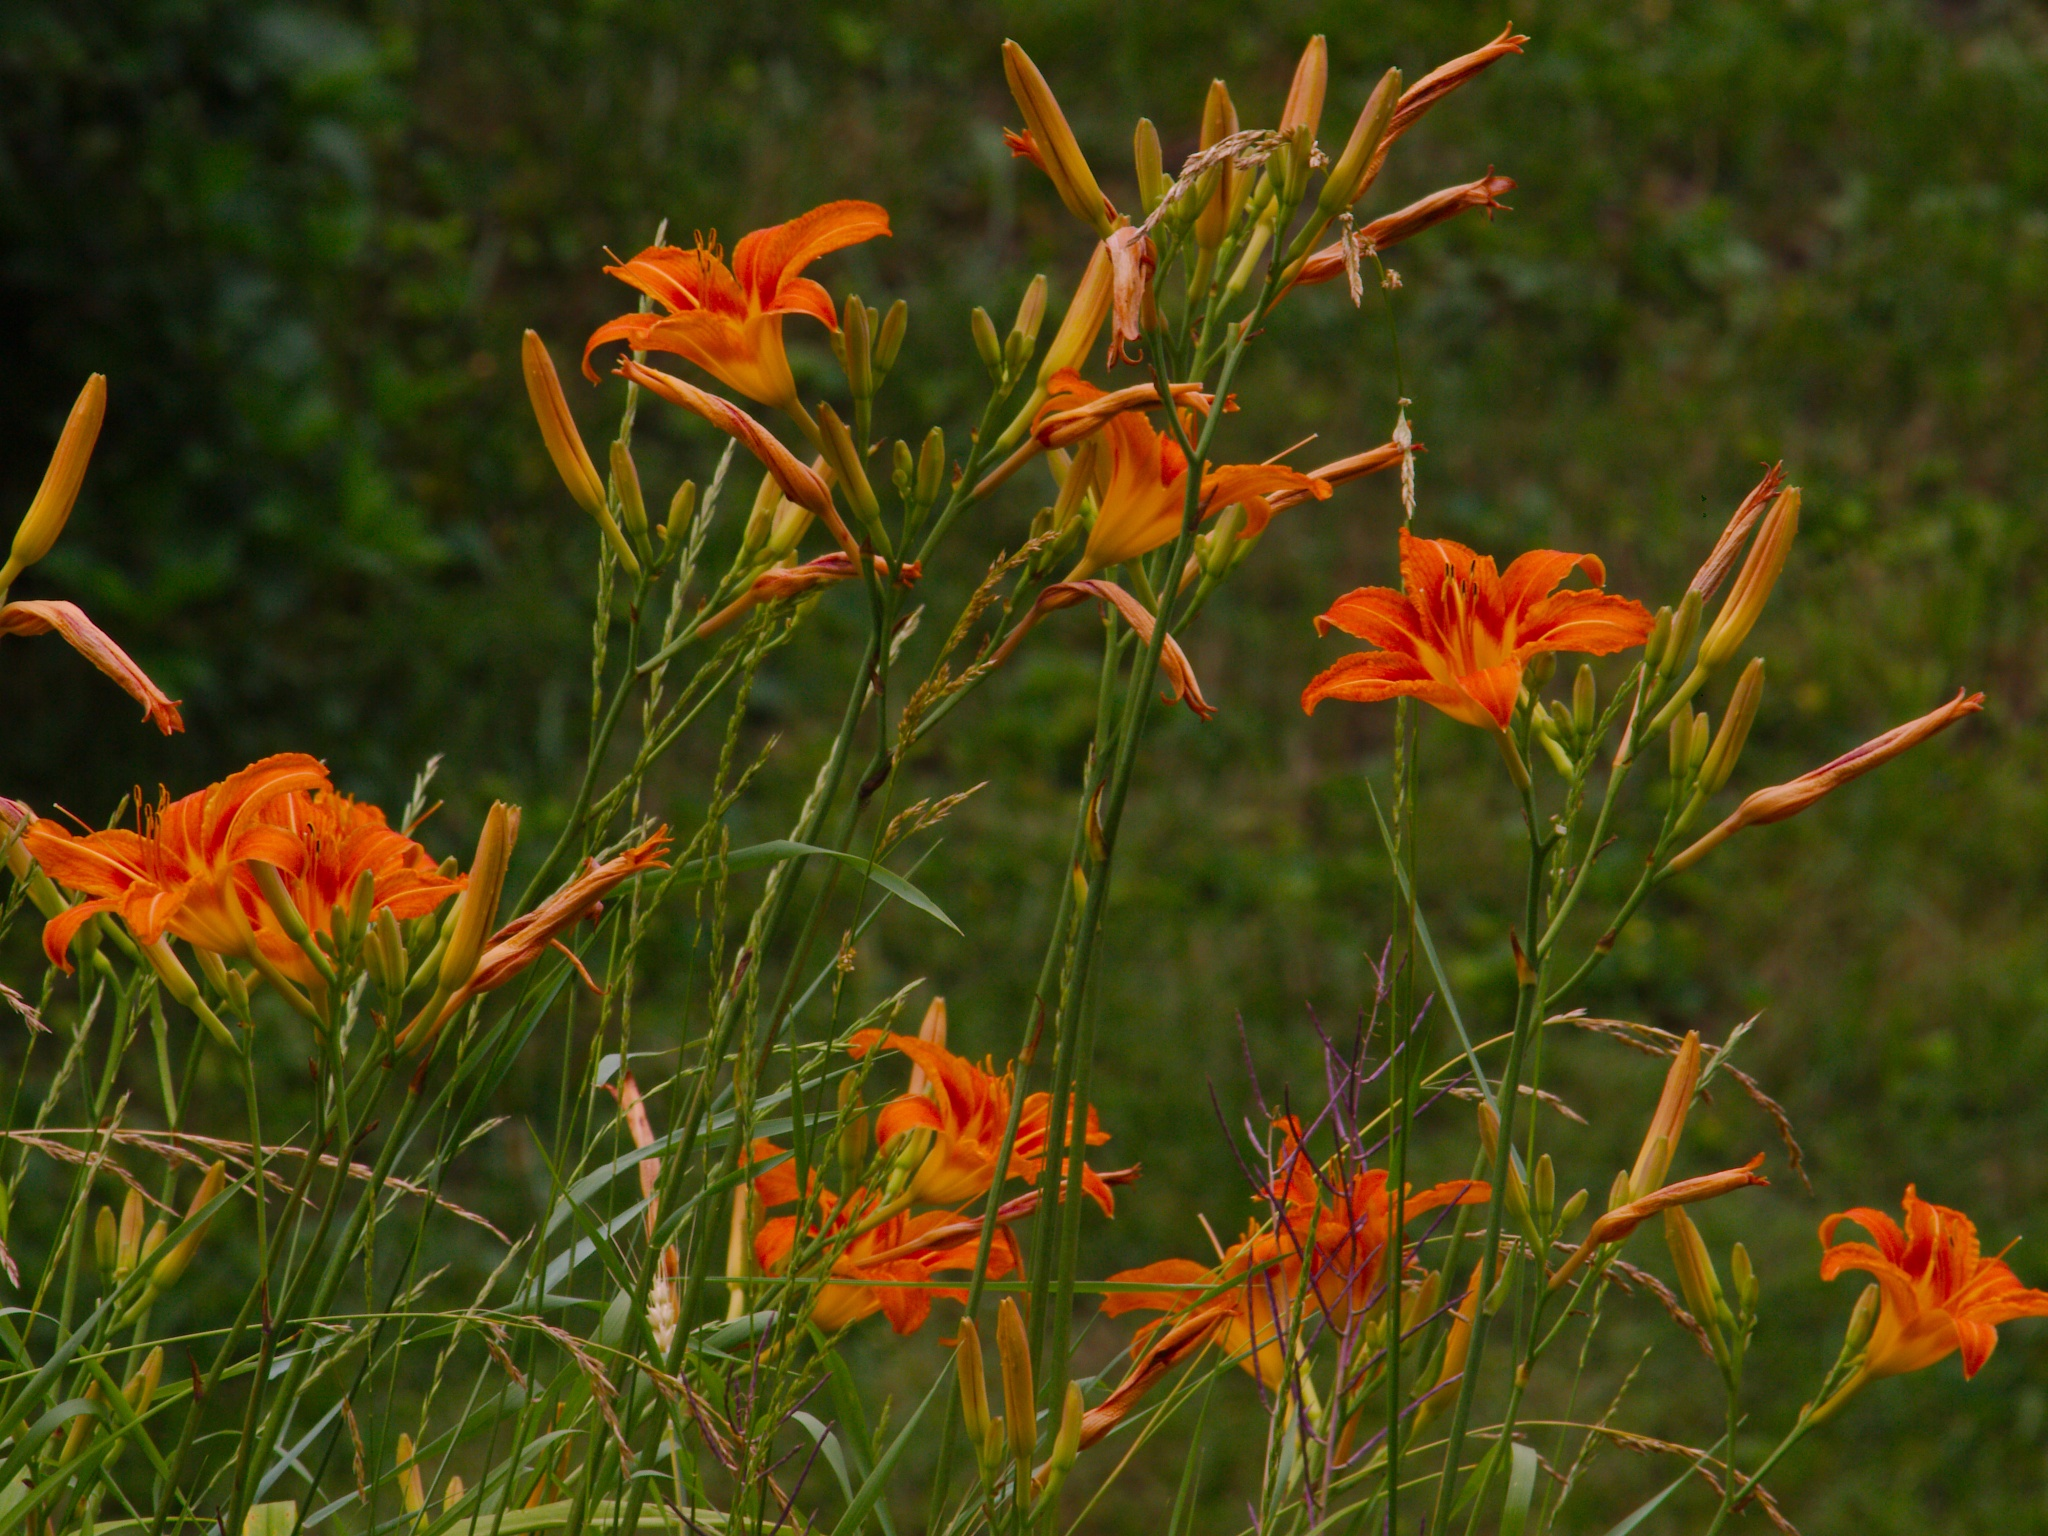 Summer Heat (Tiger Lilies) by Presnell Photography